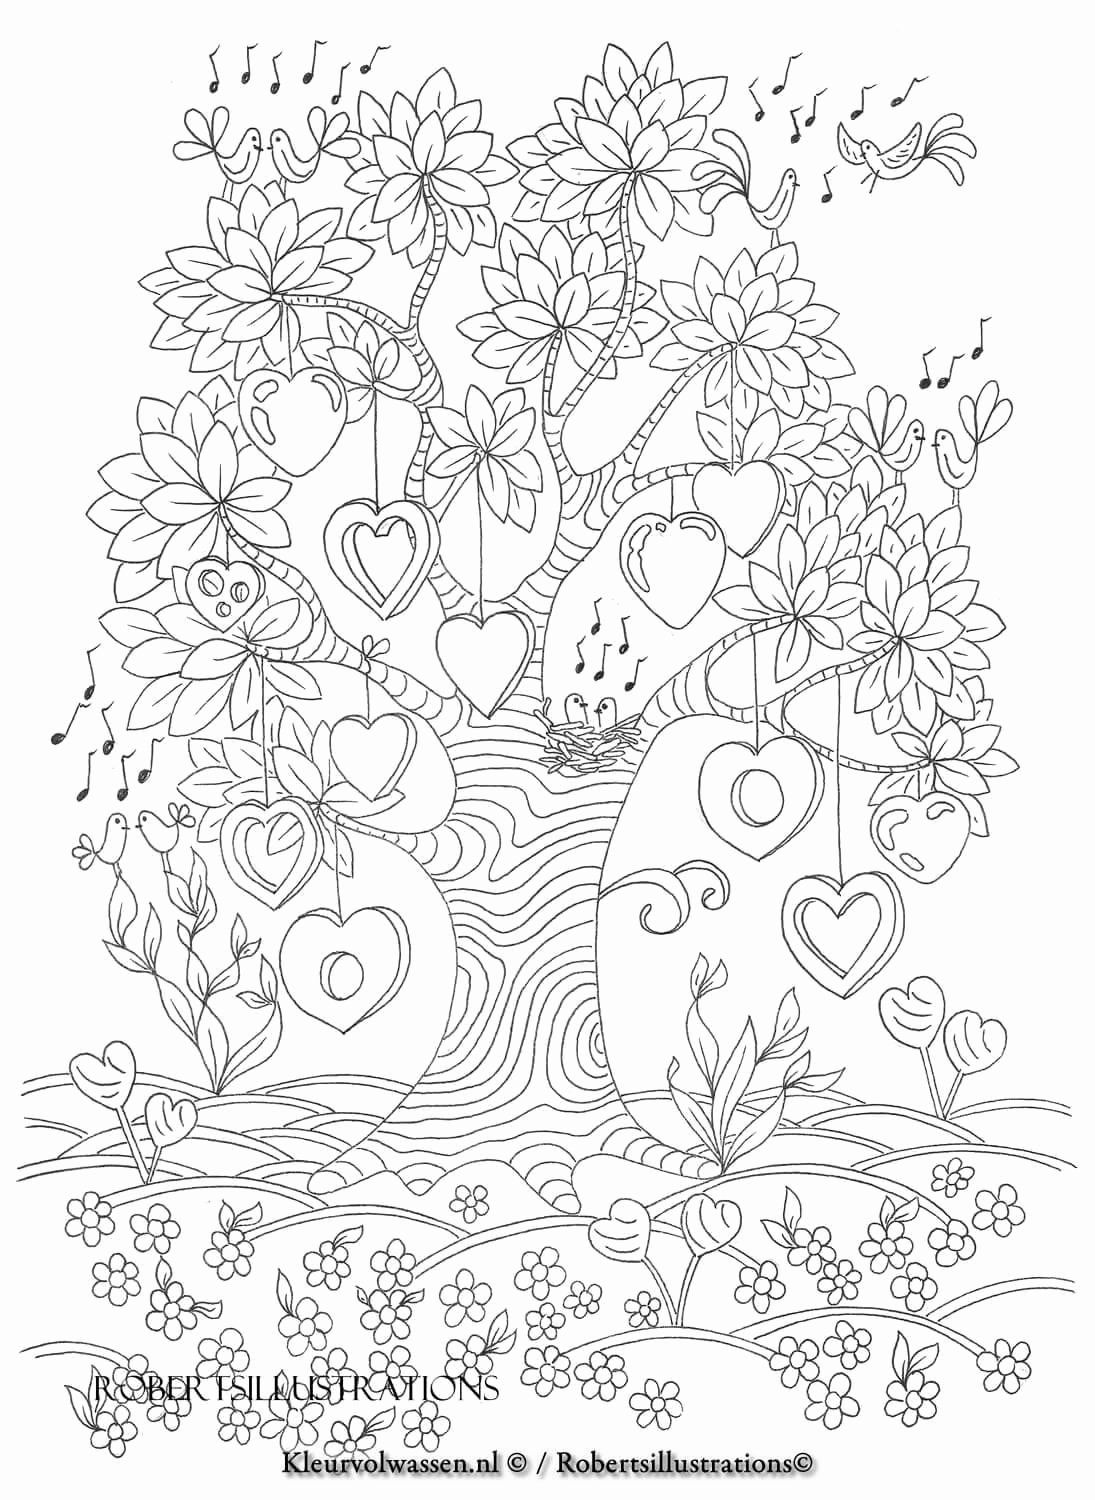 Nature Coloring Book Art Awesome Pin By Gail Dovic James On Color Me No 2 Coloring Book Art Coloring Books Coloring Pages